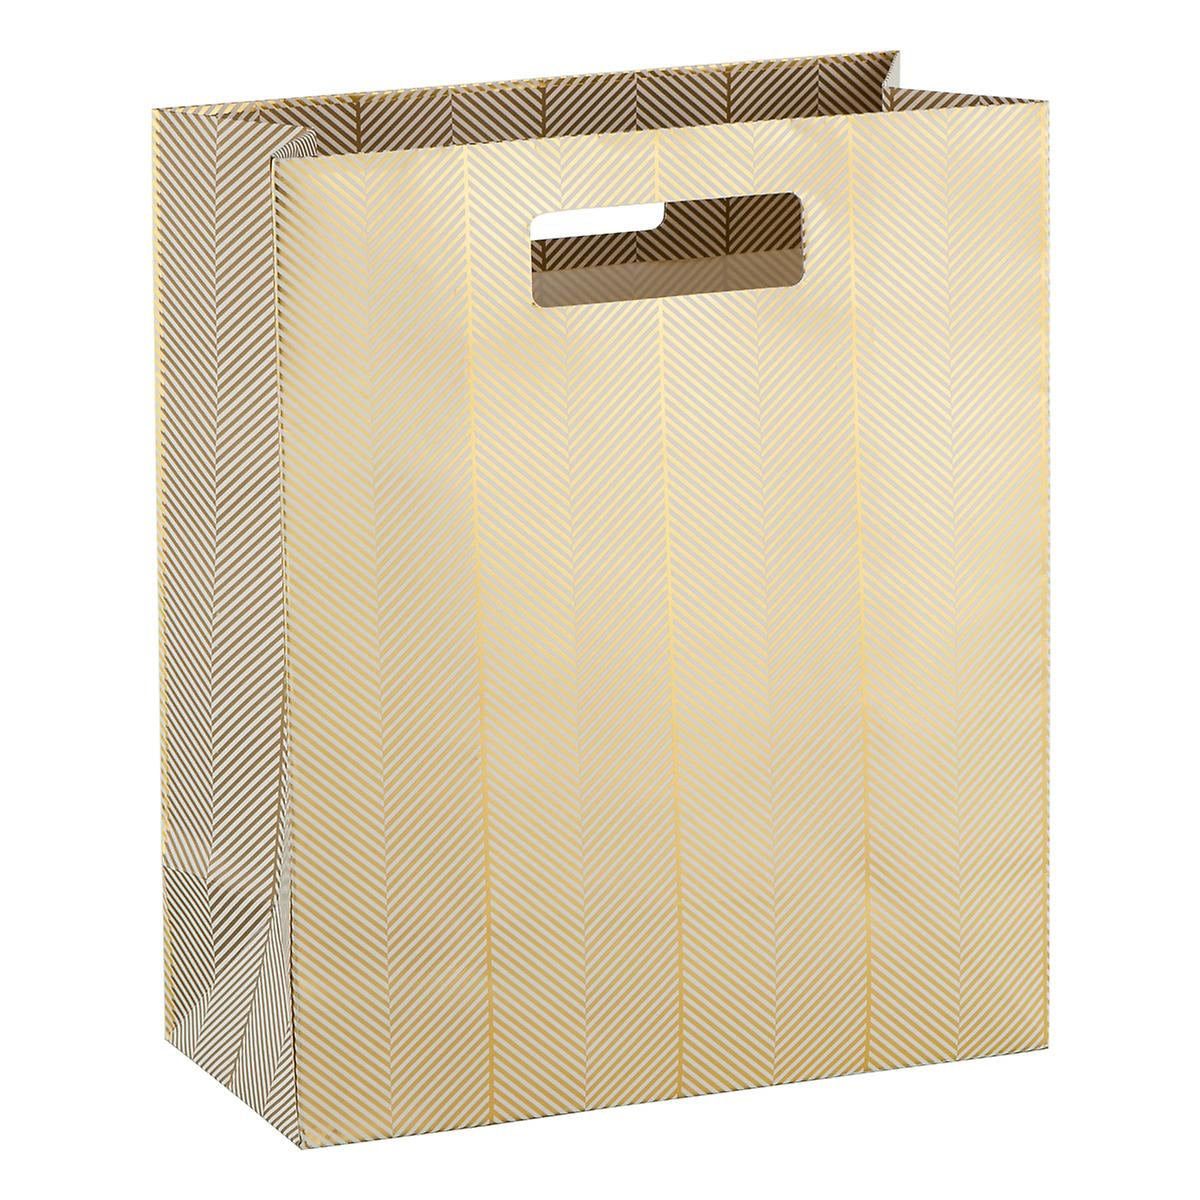 Large Golden Twill Foil Gift Tote